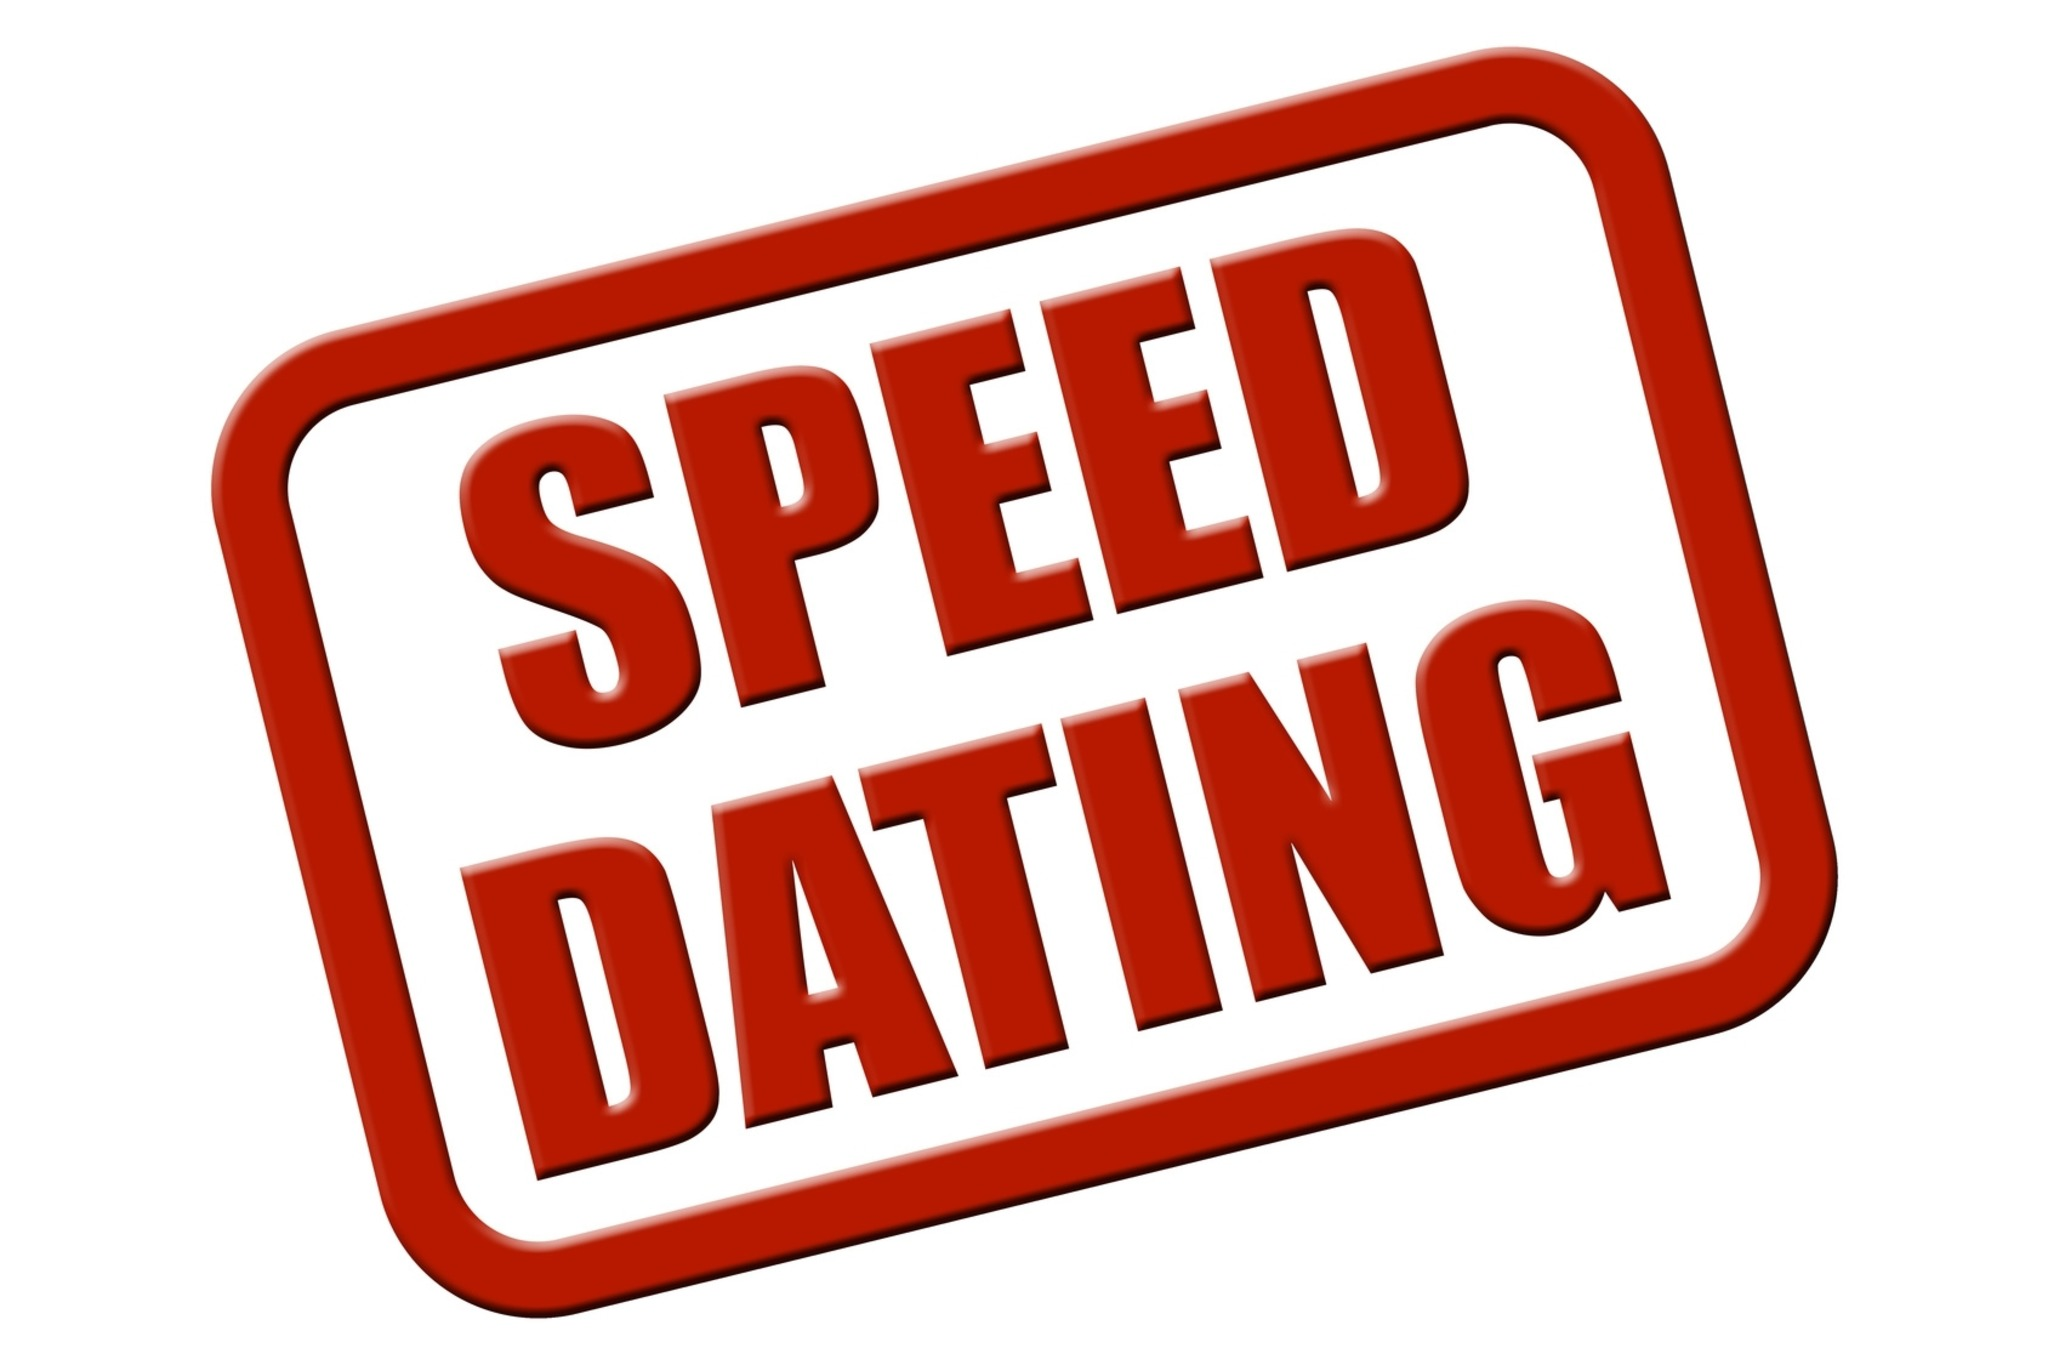 Speed-Dating-Engel